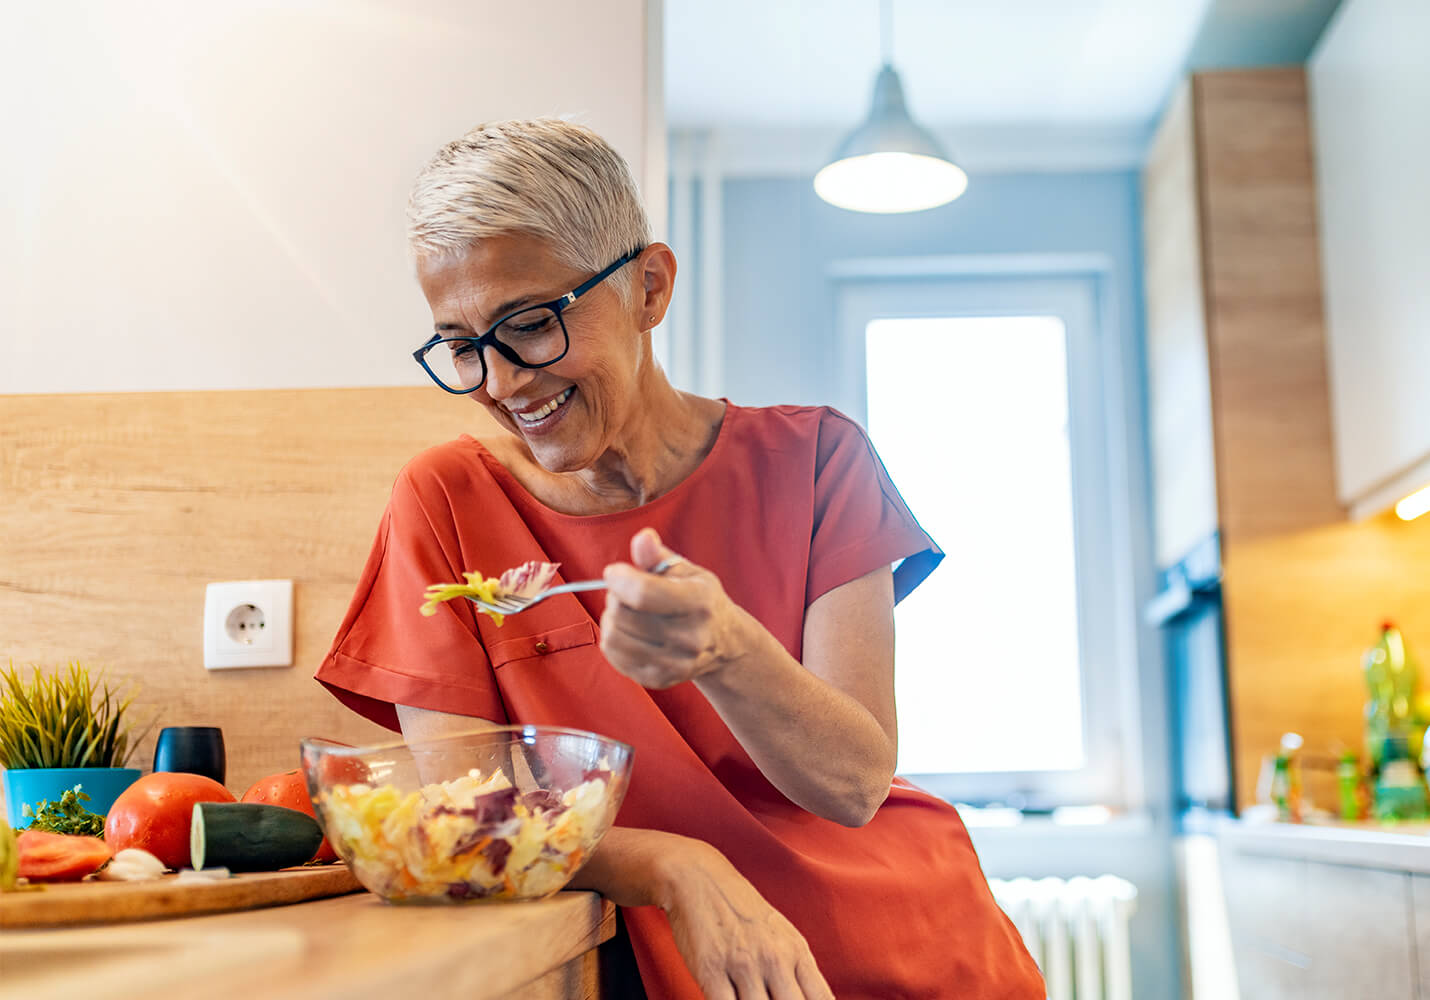 Woman enjoying a nutritious salad